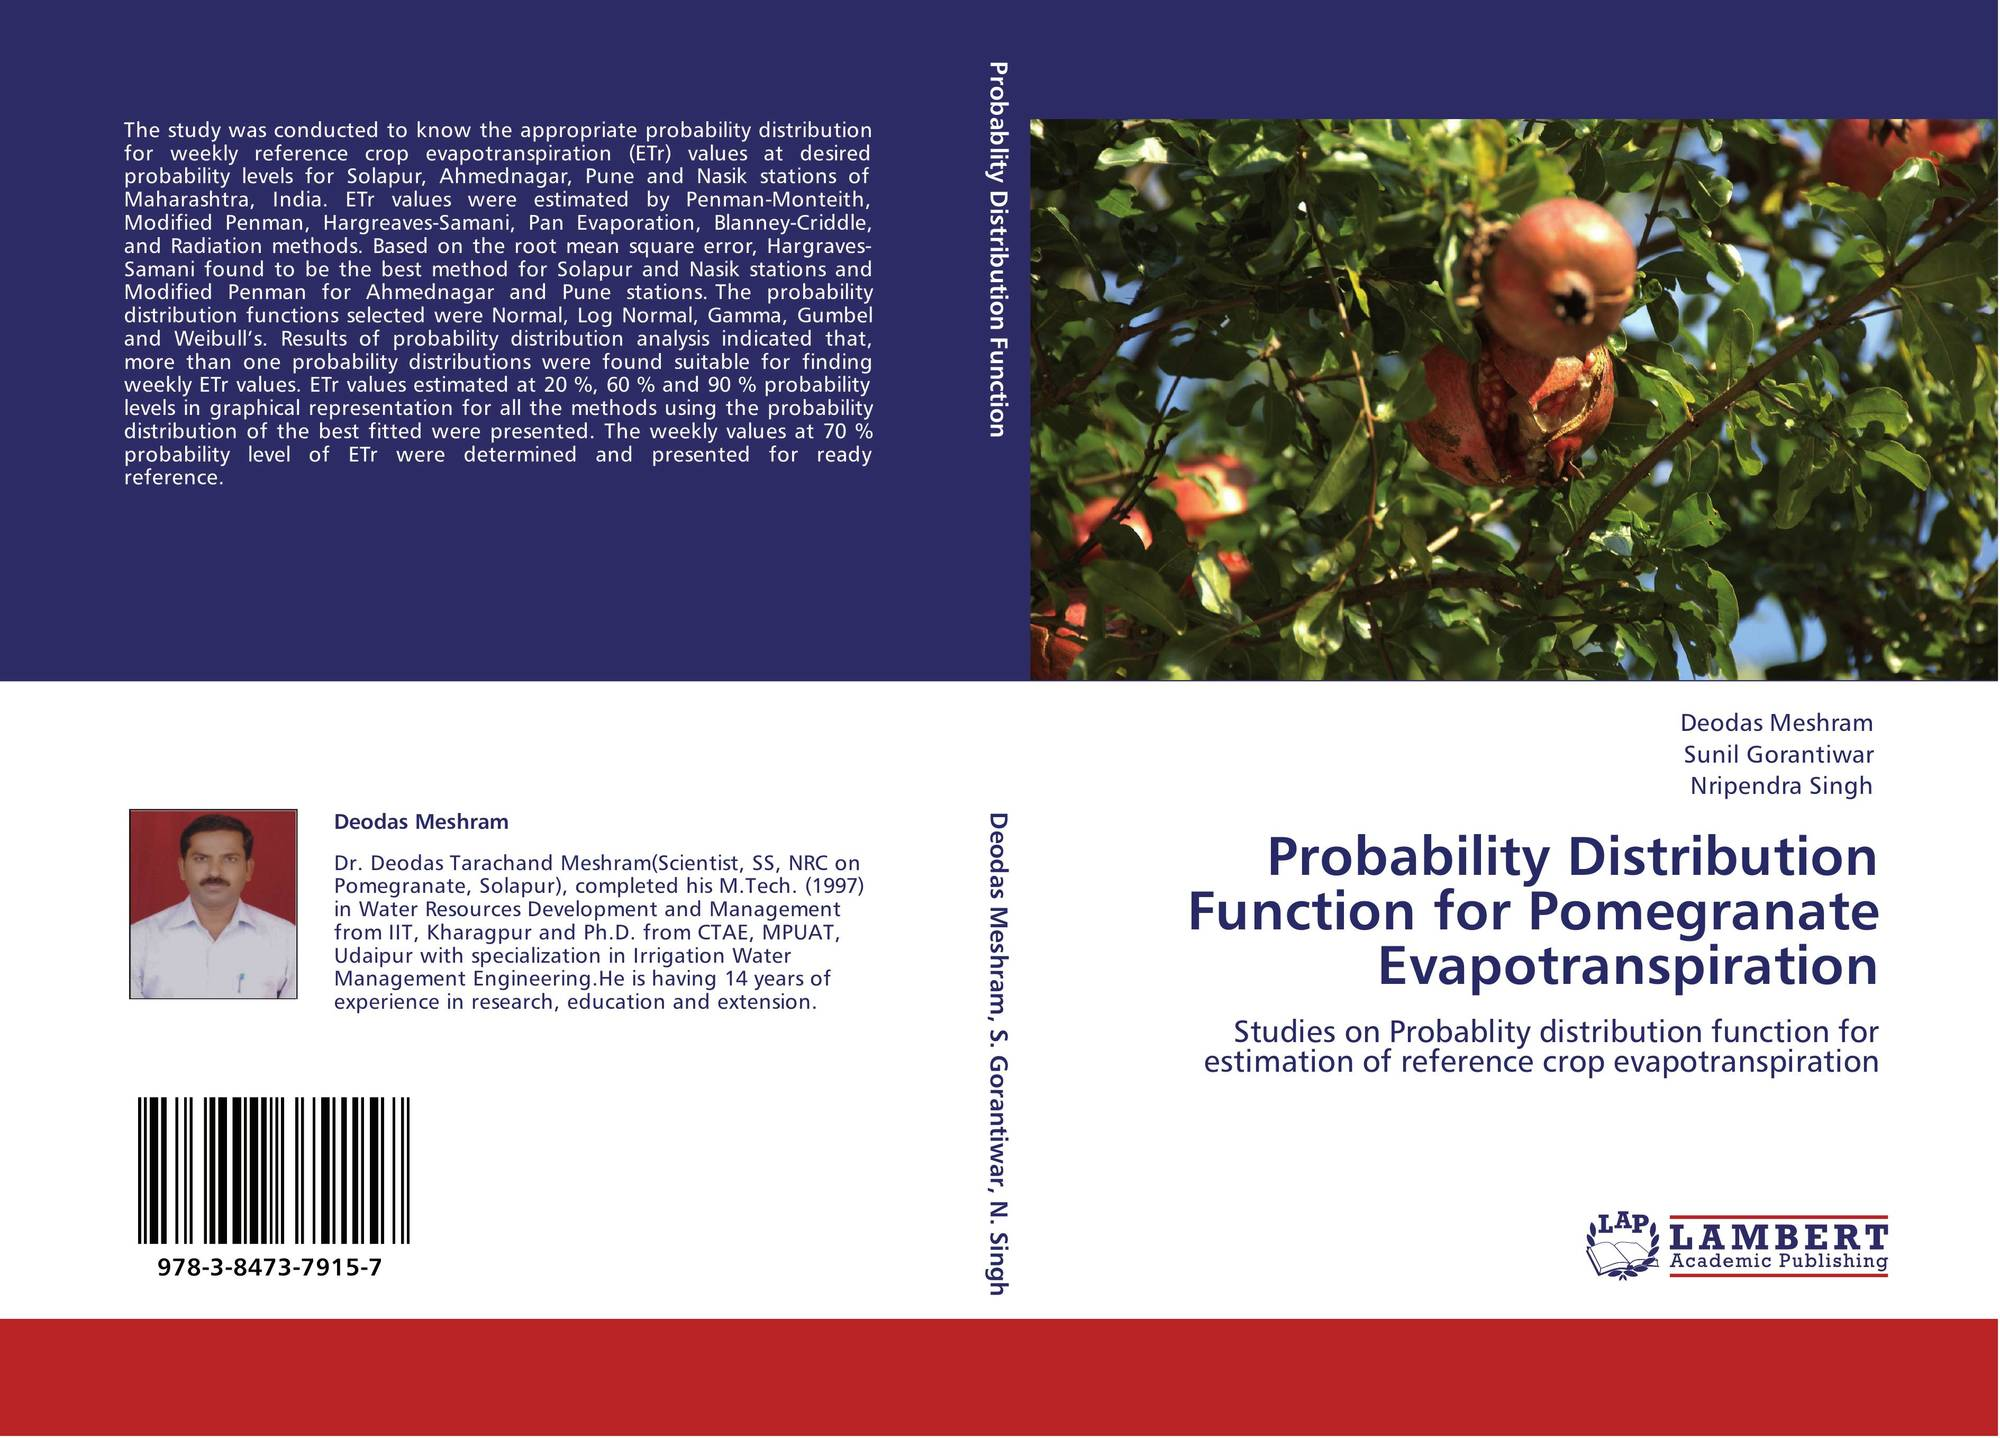 Probability Distribution Function for Pomegranate